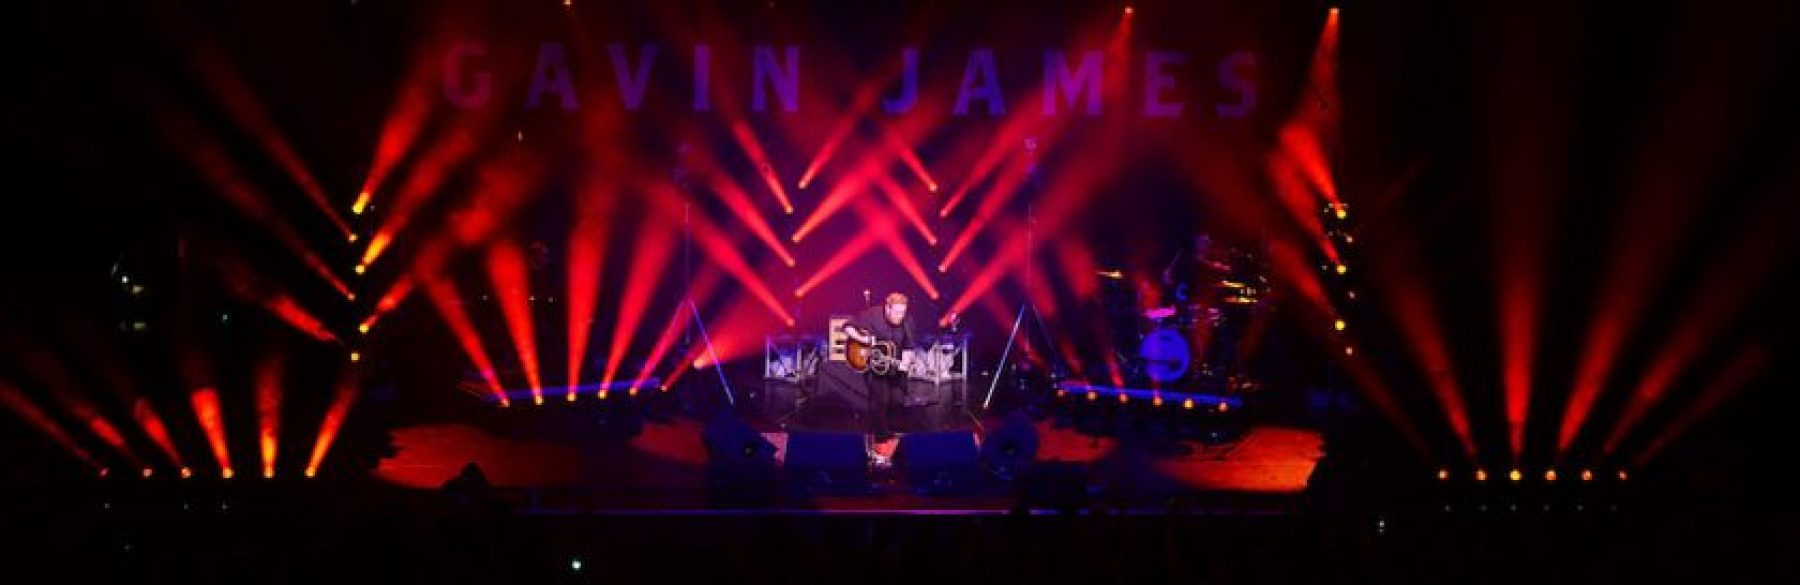 INEC Killarney New Lighting Rig Goes Live on Gavin James with AC-ET